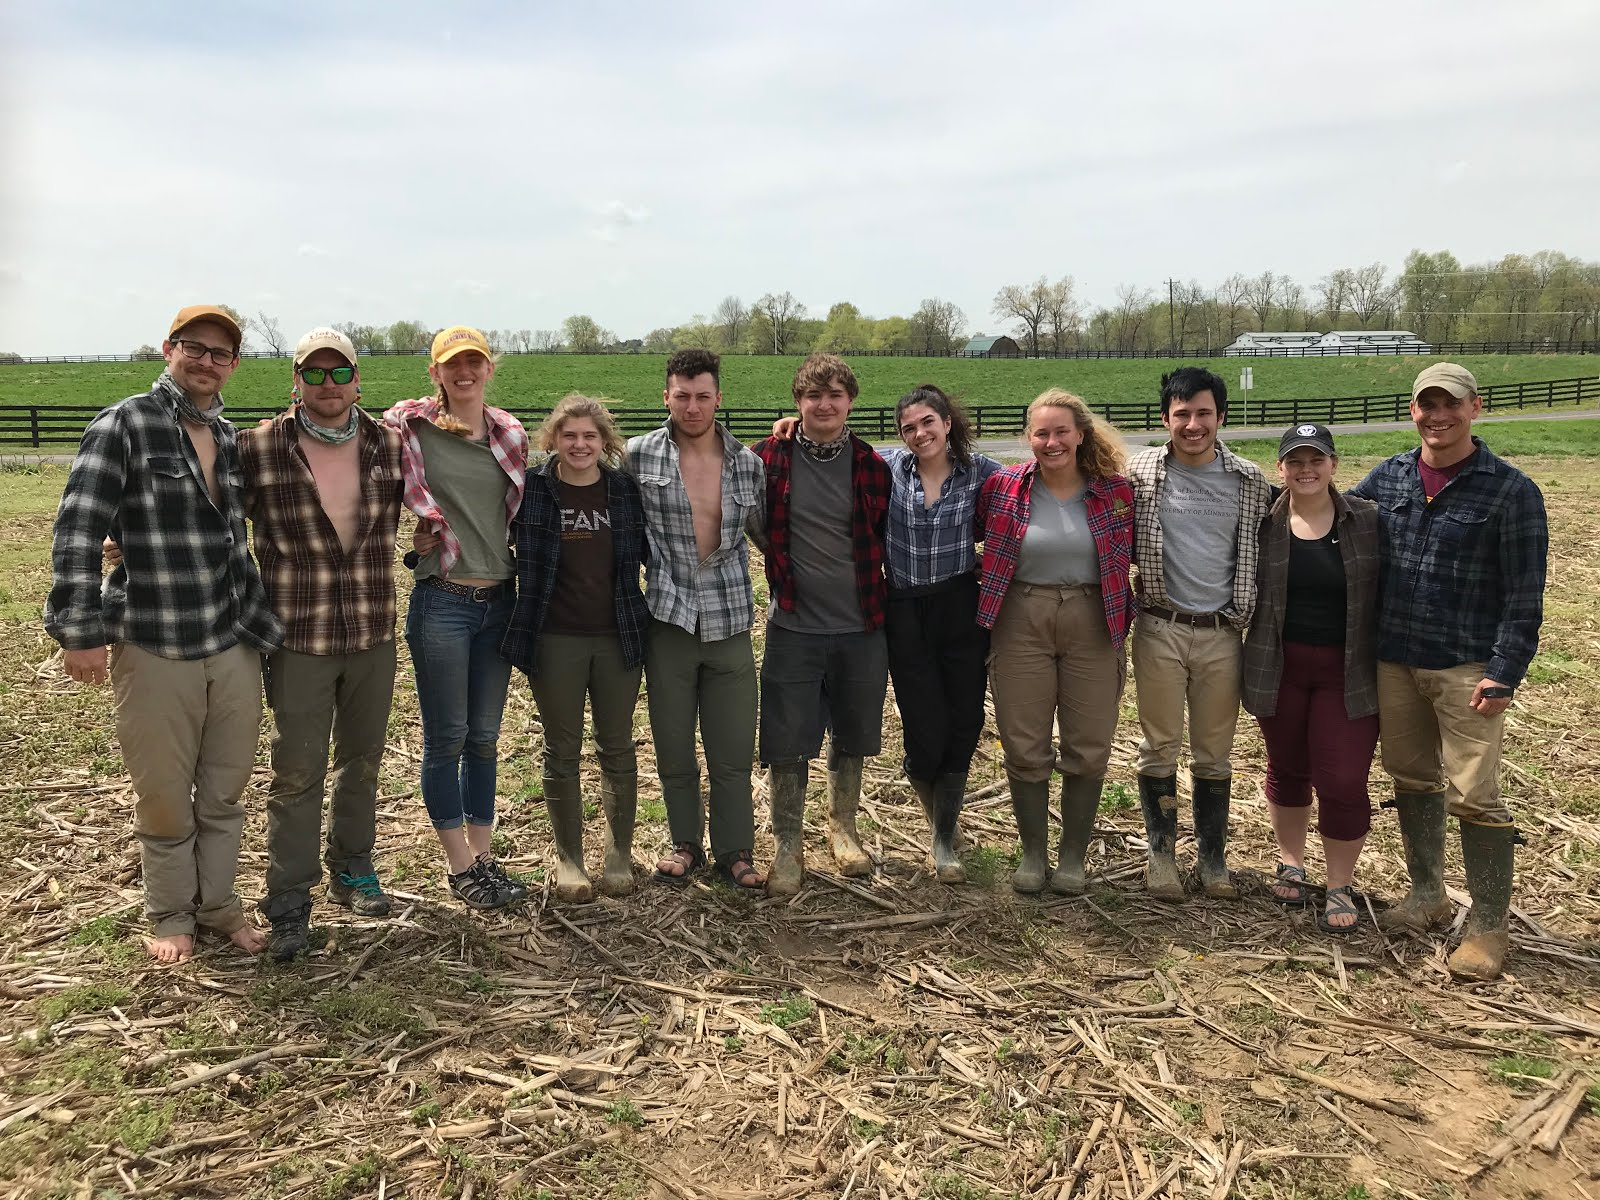 2019 University of Minnesota NACTA Soil Judging Team